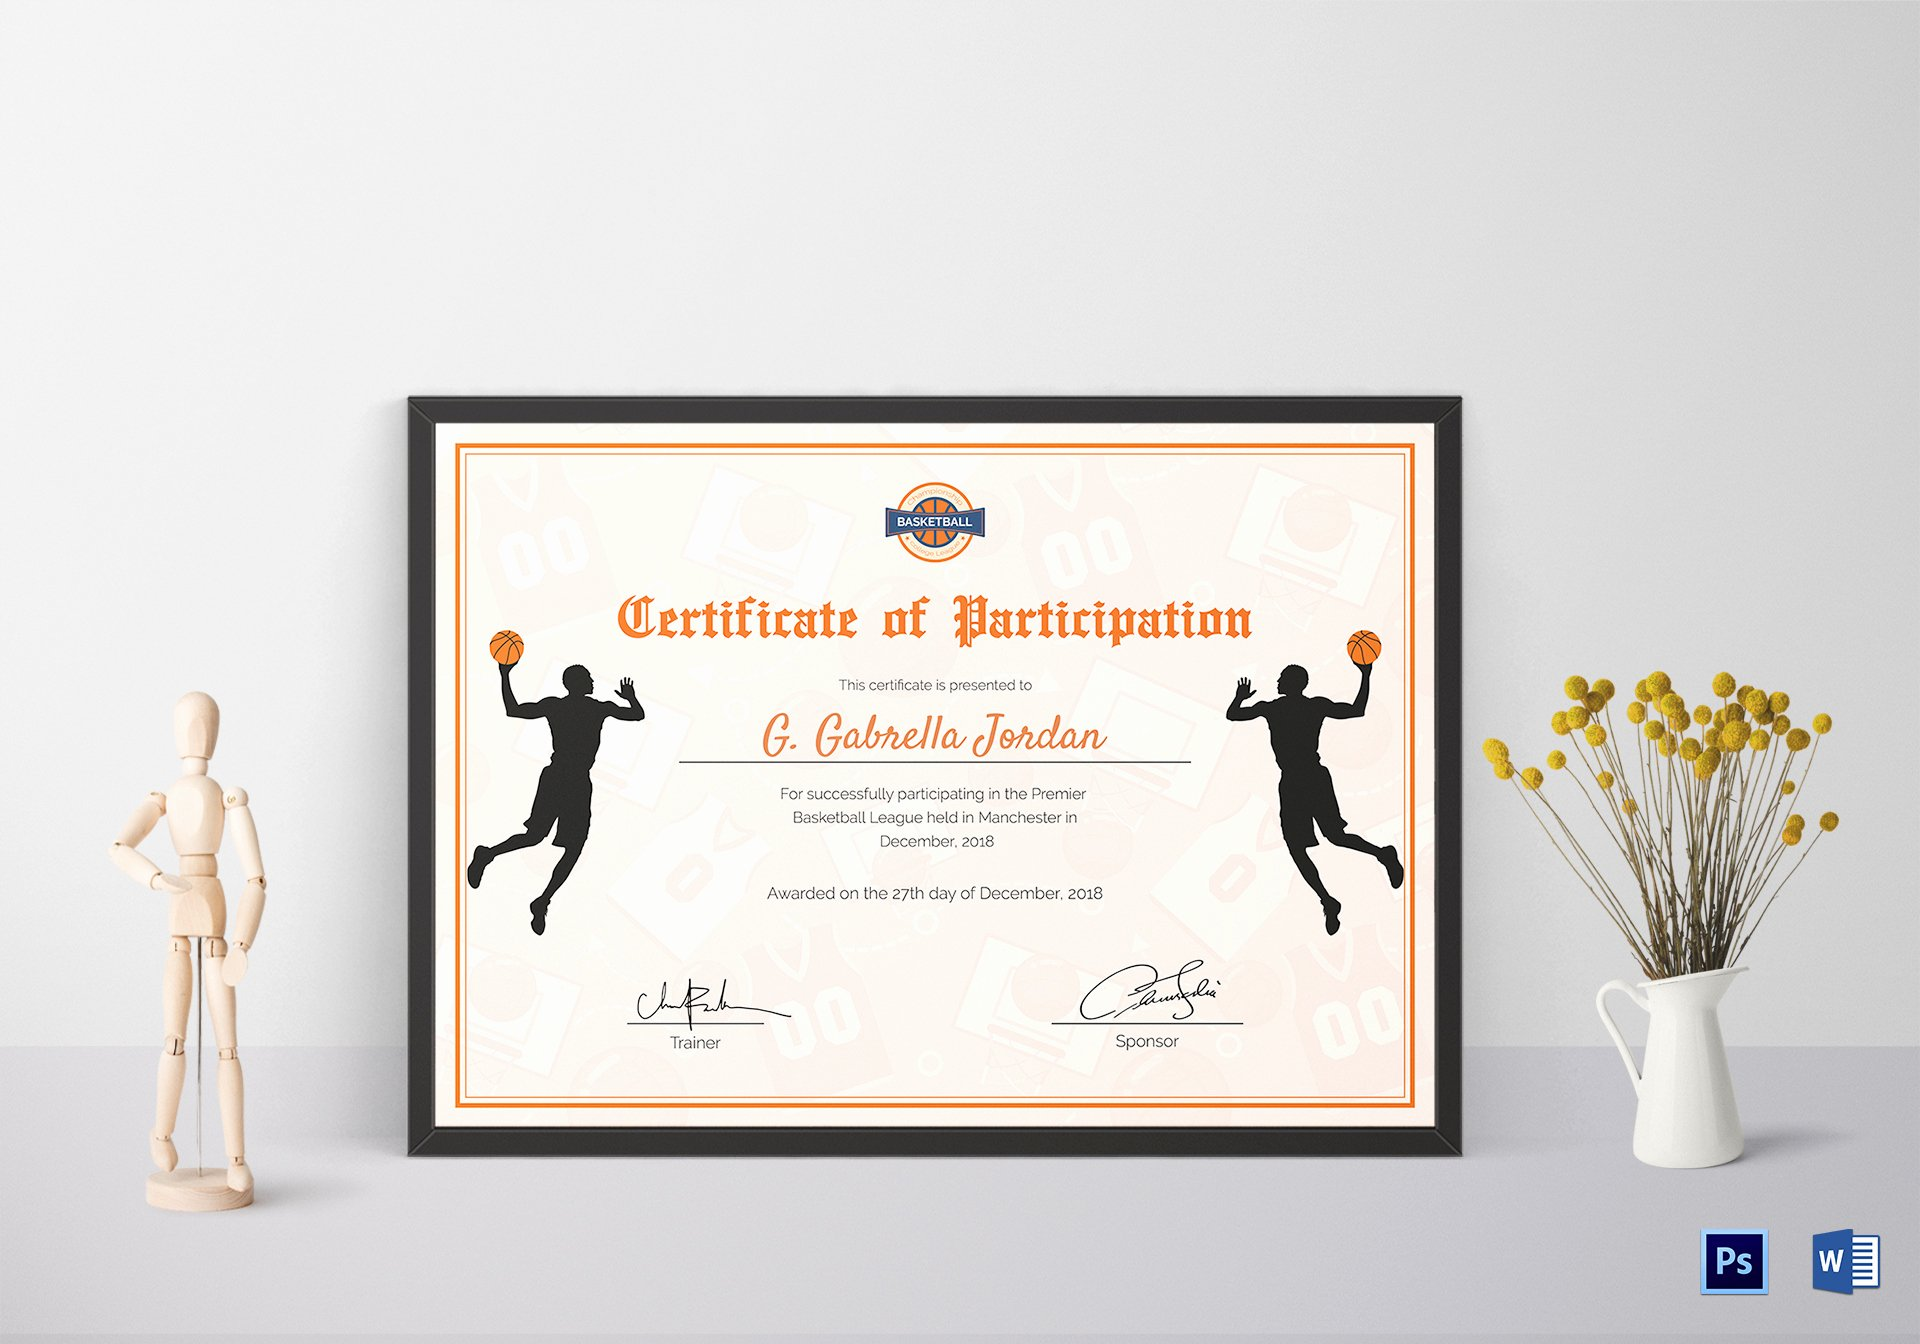 Basketball Certificate Templates for Word Unique Certificate Of Basketball Participation Design Template In